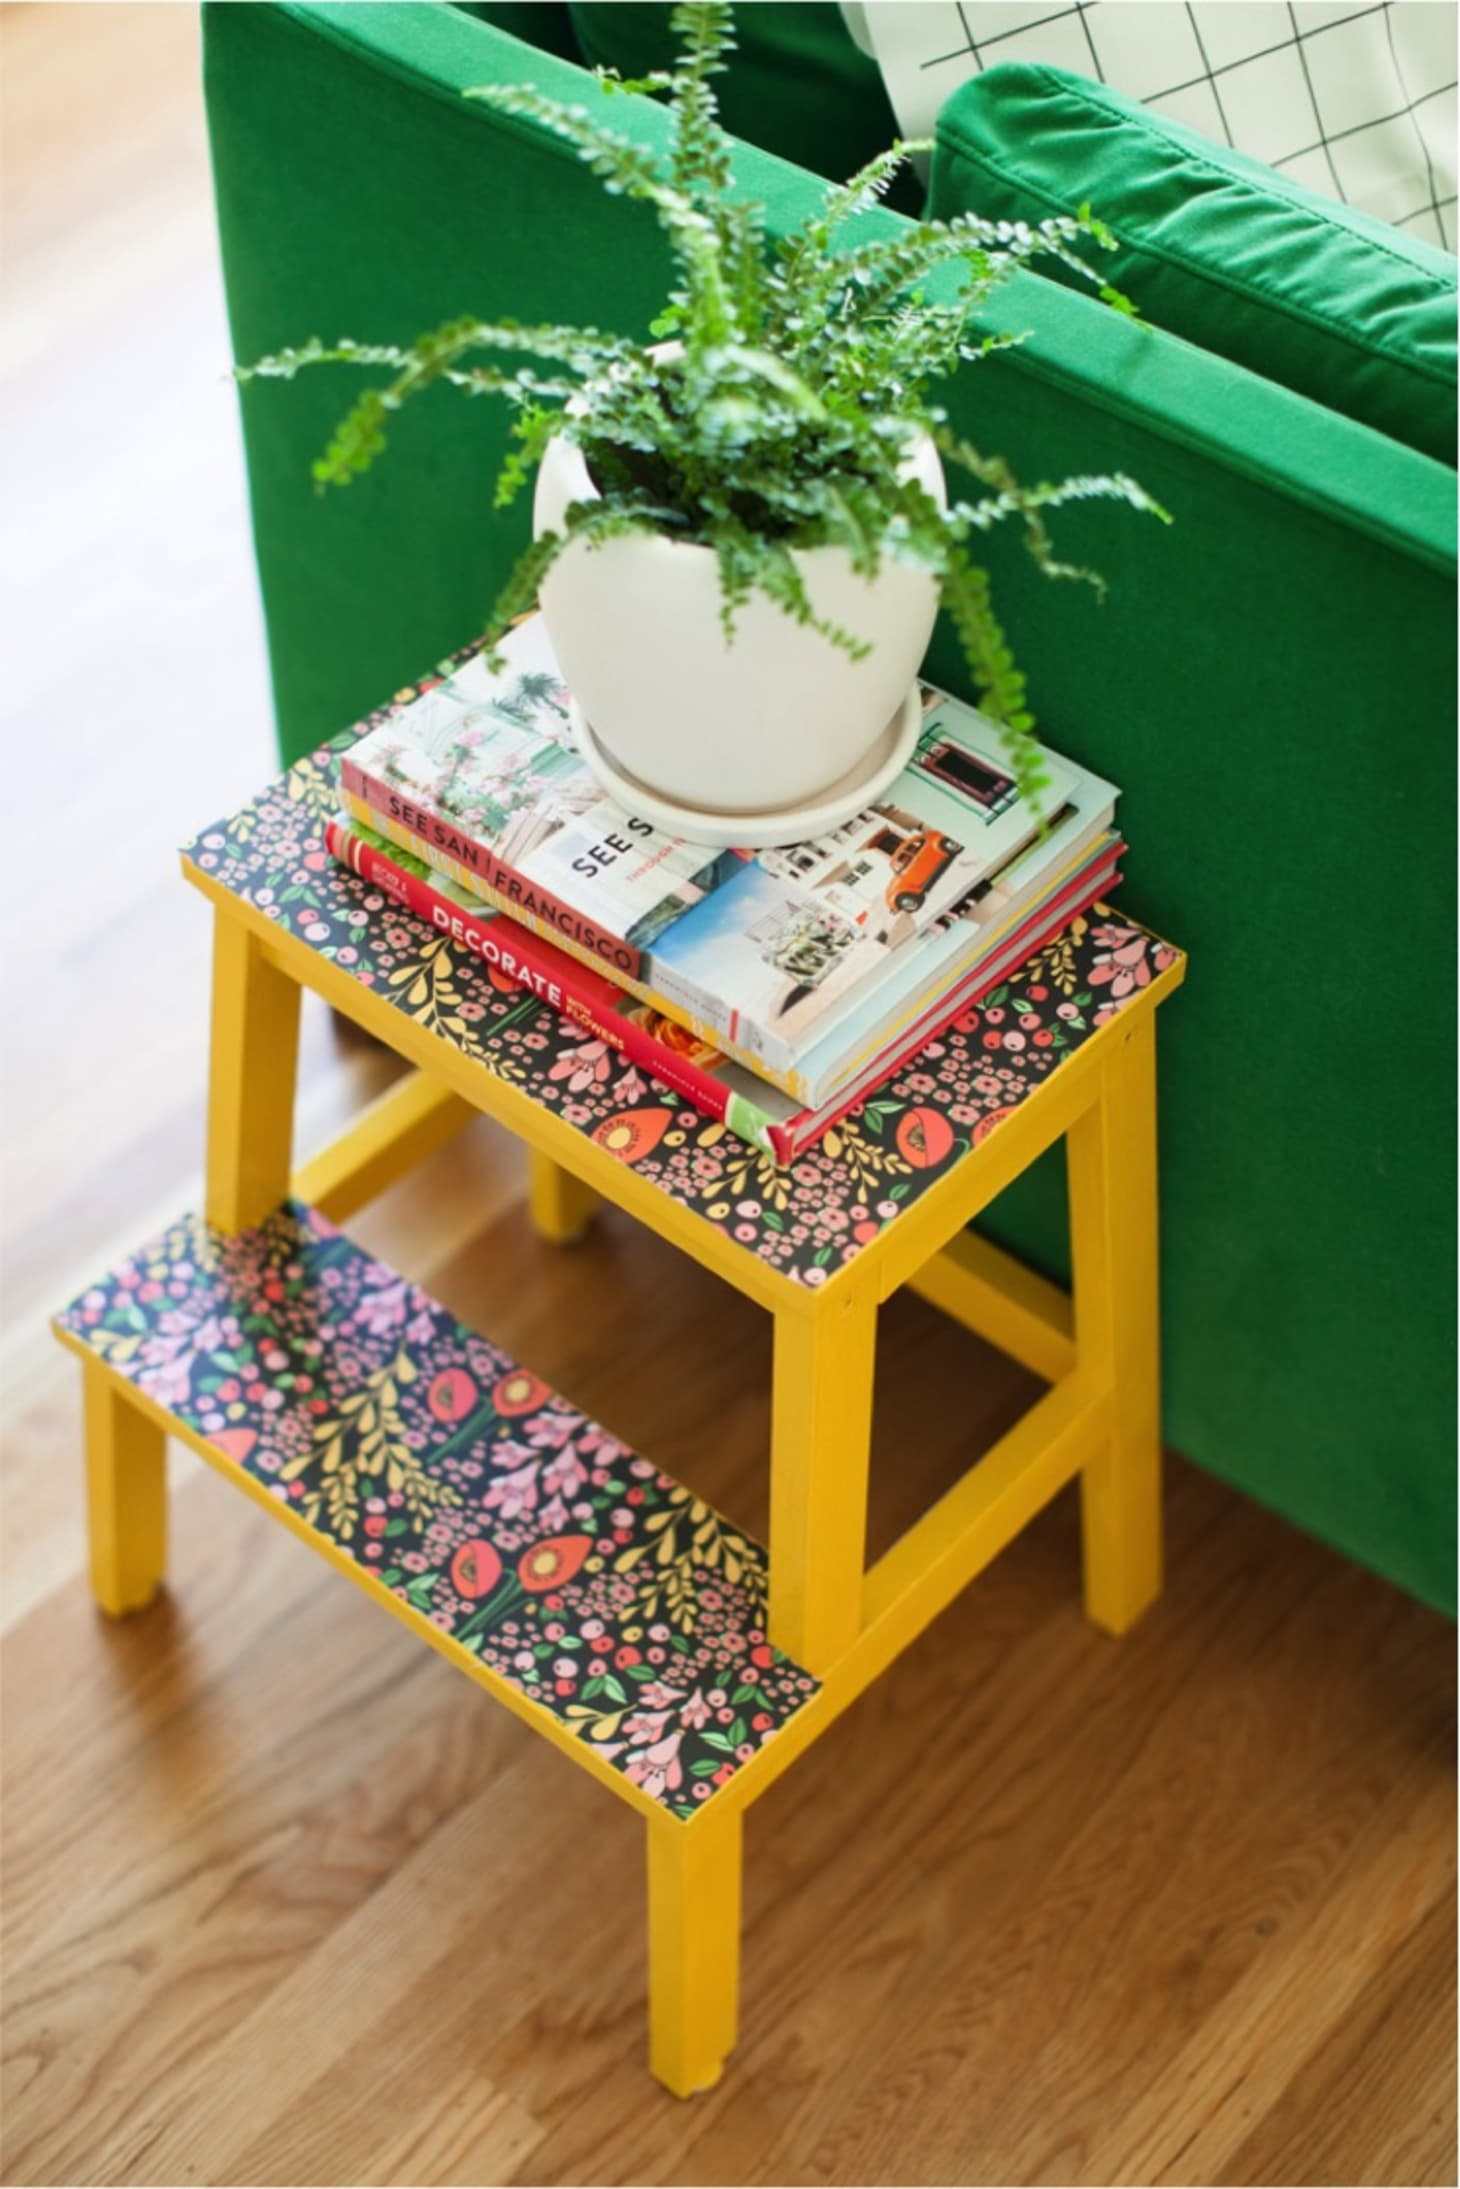 Strange Bekvam Step Stool Hacks And Makeovers Apartment Therapy Machost Co Dining Chair Design Ideas Machostcouk